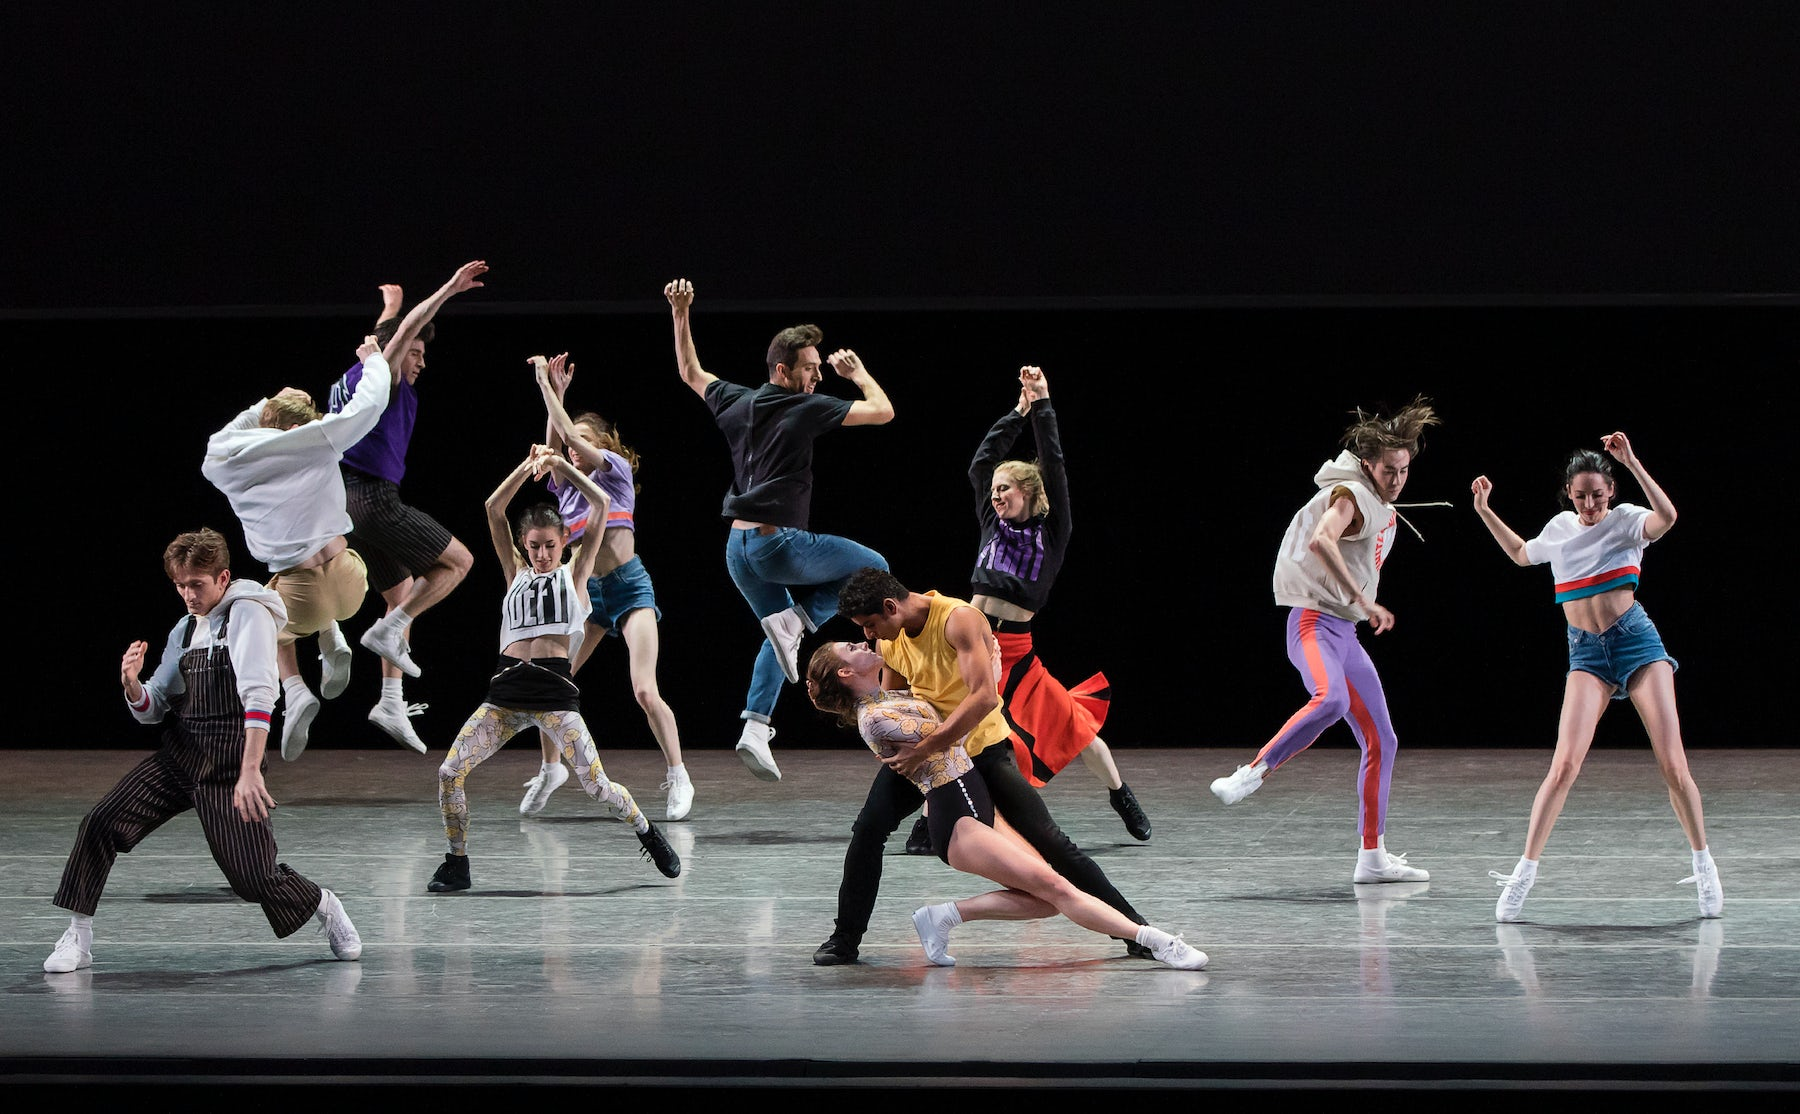 """NYCB Principal Dancers Tiler Peck and Amar Ramasar and the Company during the world premiere of """"The Times Are Racing,"""" costumed by Opening Ceremony   Photo: Paul Kolnik"""